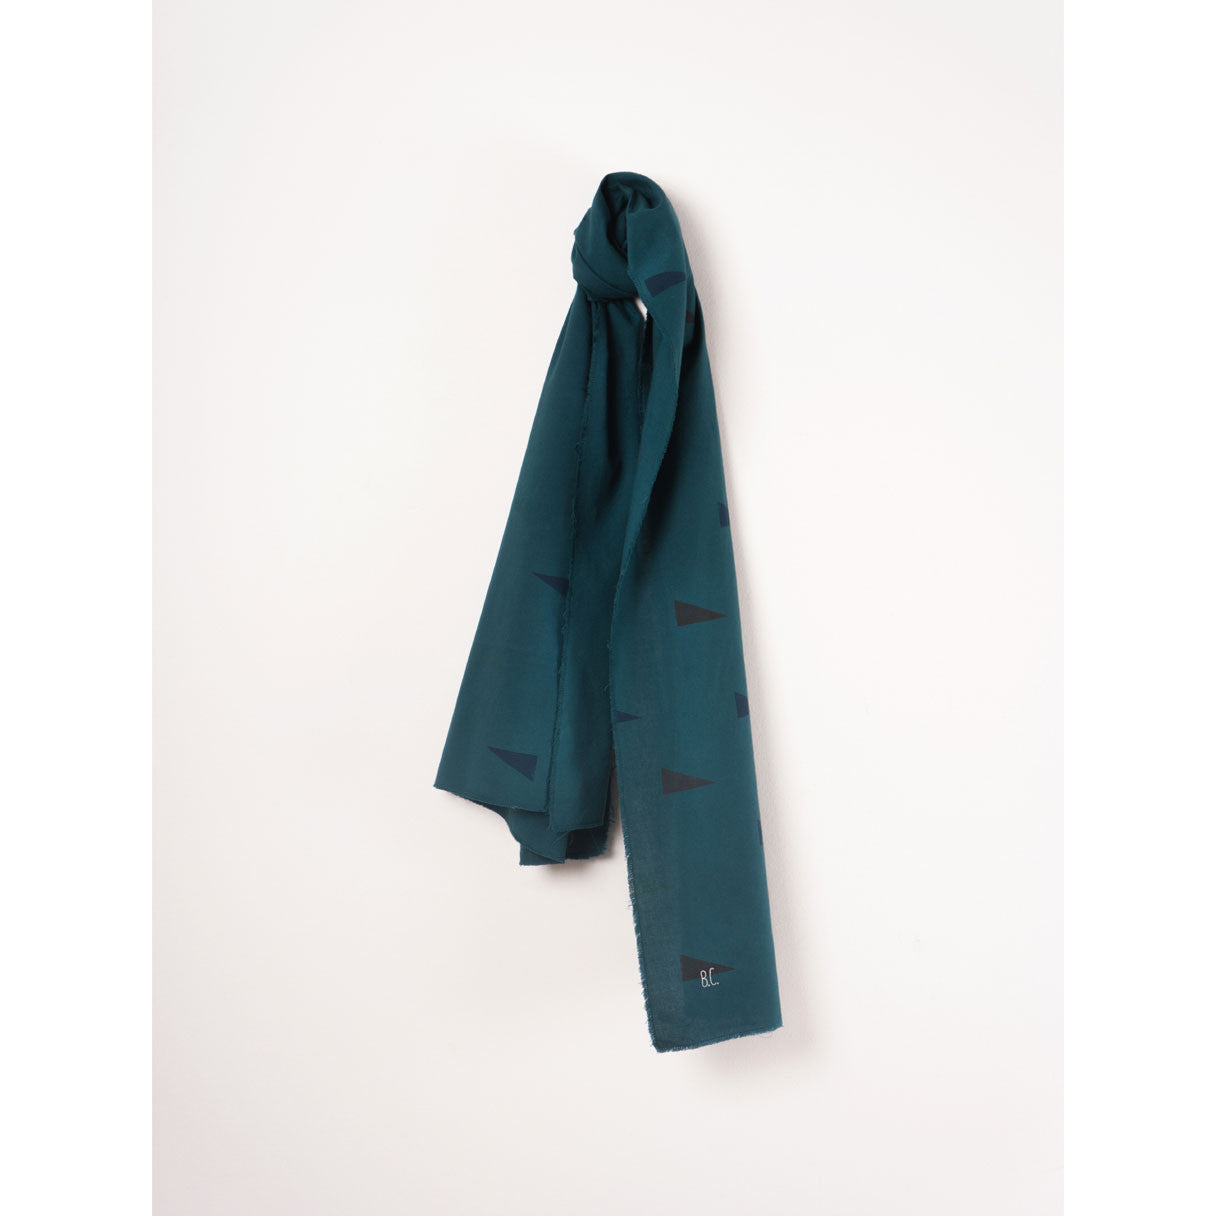 Bobo Choses Sails Foulard - Ladida